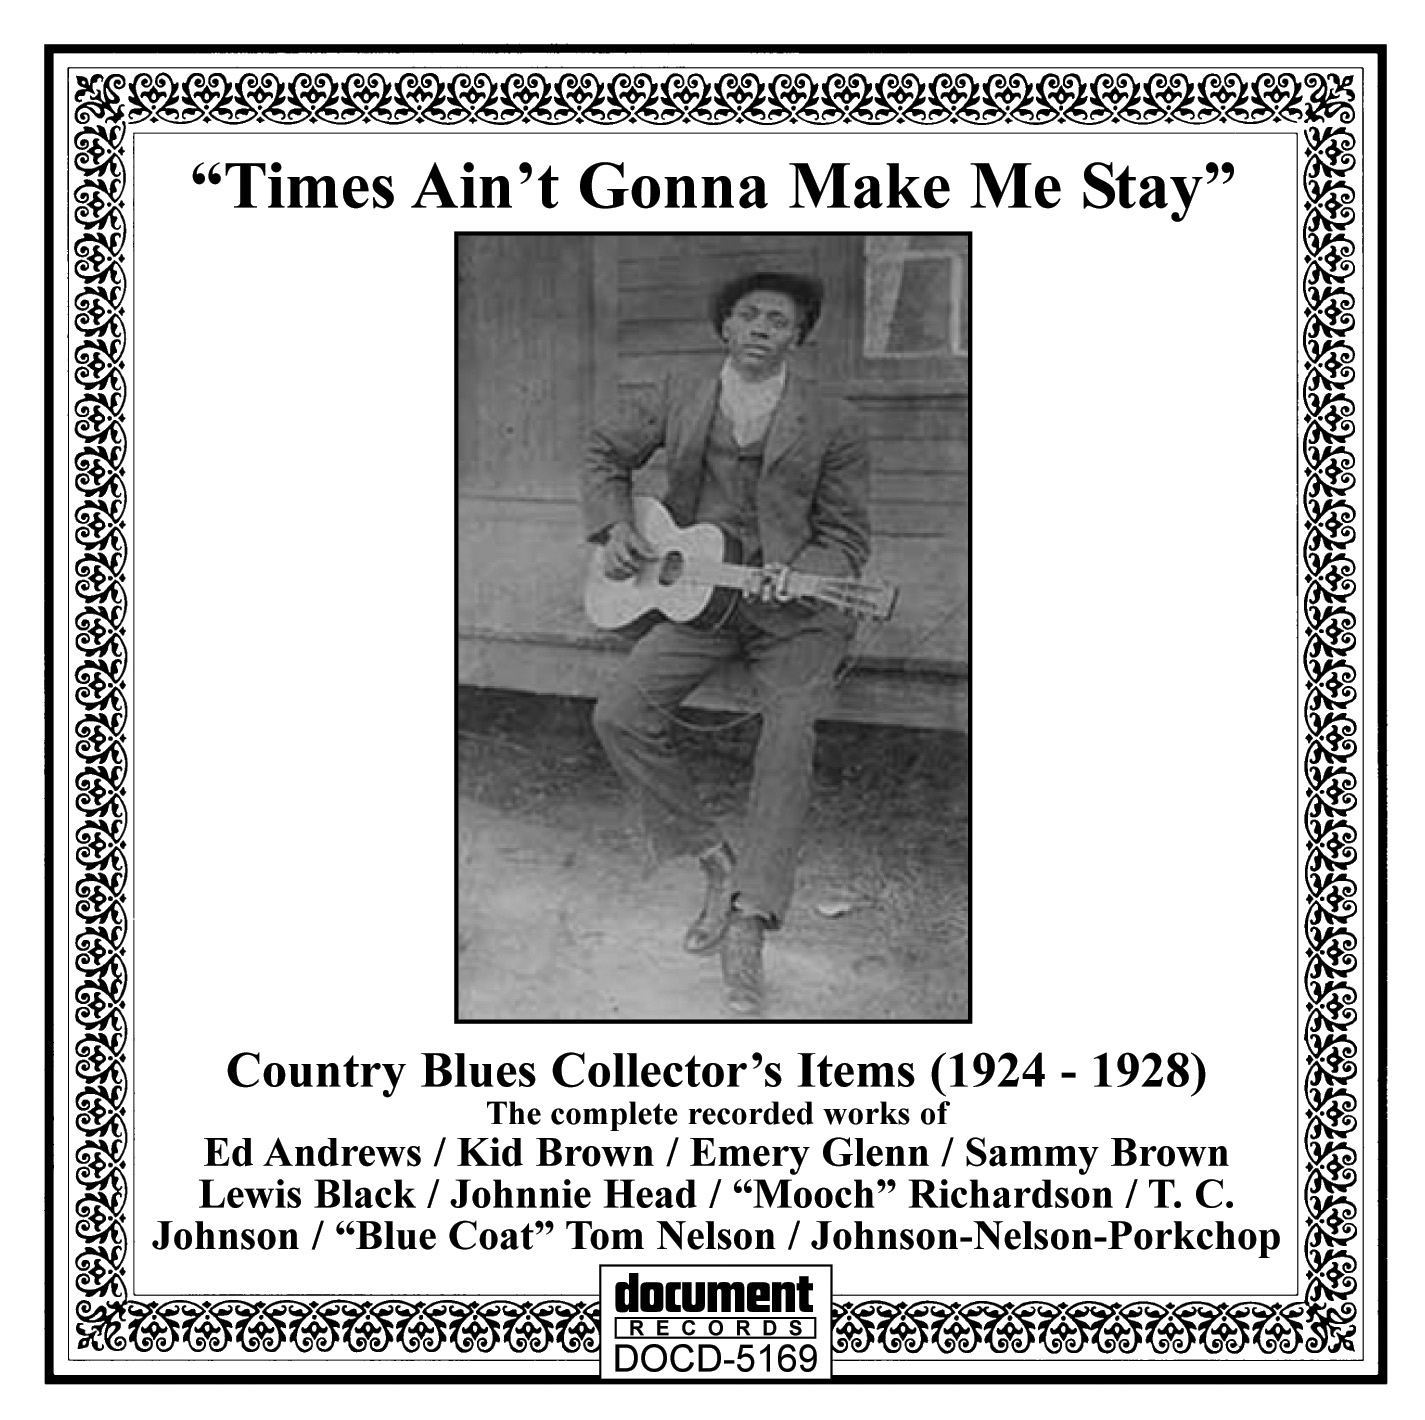 Country Blues Collector's Items (1924-1928) - The Document